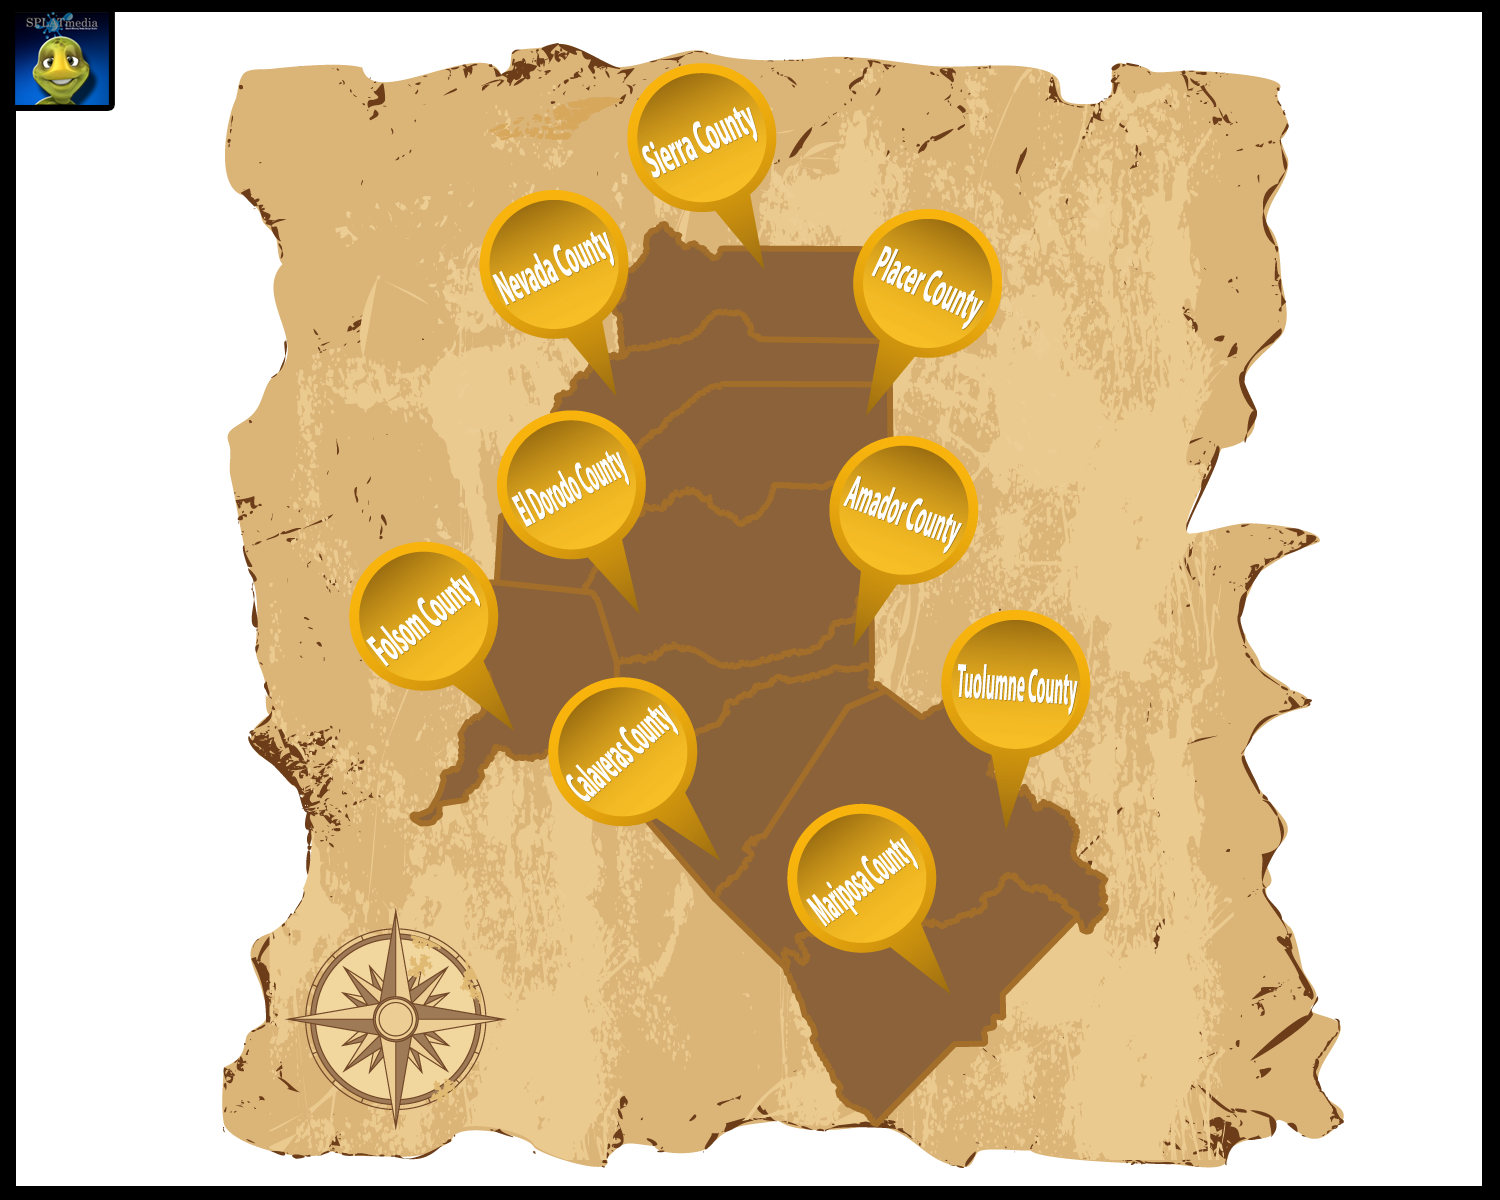 Gold Country Map | 7 Vector Designs for a business in United ... on grand island map, western il map, college station map, michigan gold panning map, us gold mines map, elko map, yolo county map, mother lode map, gold producing countries in africa, hanford map, rio linda map, colfax map, view northern california cities map, boone map, barbary coast map, philadelphia map, amador county winery map, north central fl map, little rock map, ohio gold deposit map,